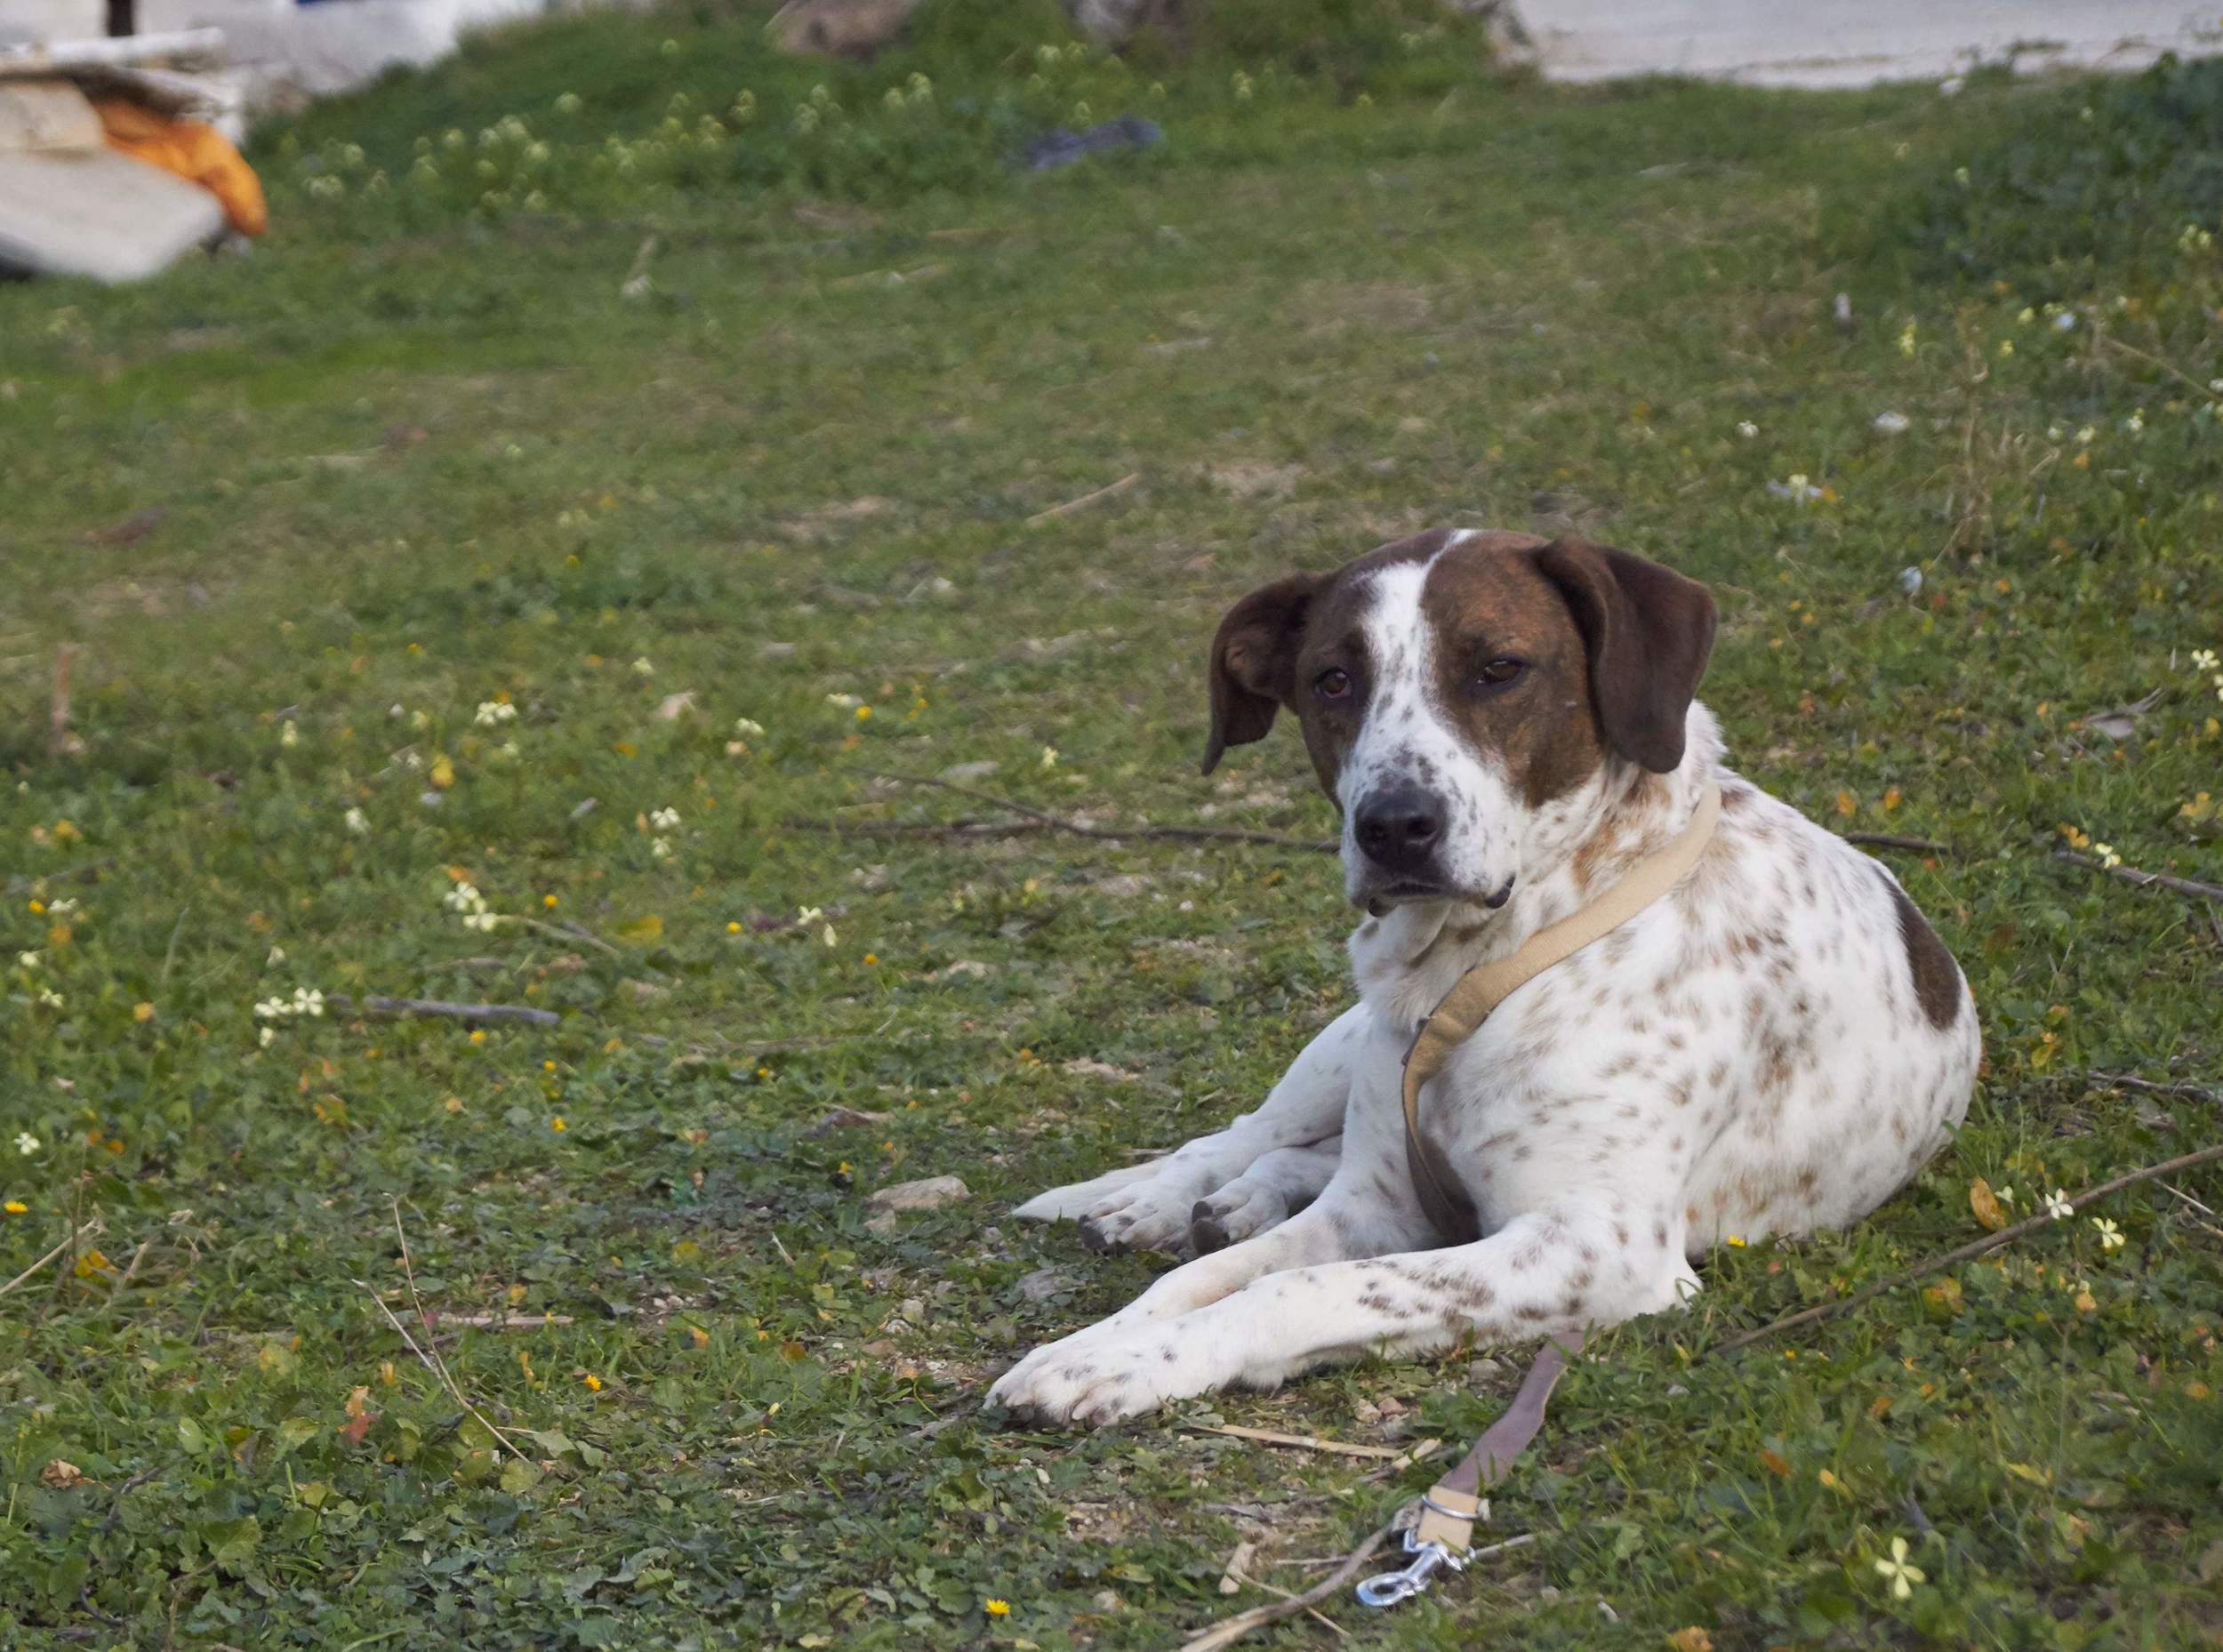 Alitis mix breed | Mykonos dog rescue and adoption | Medusa Gallery Athens